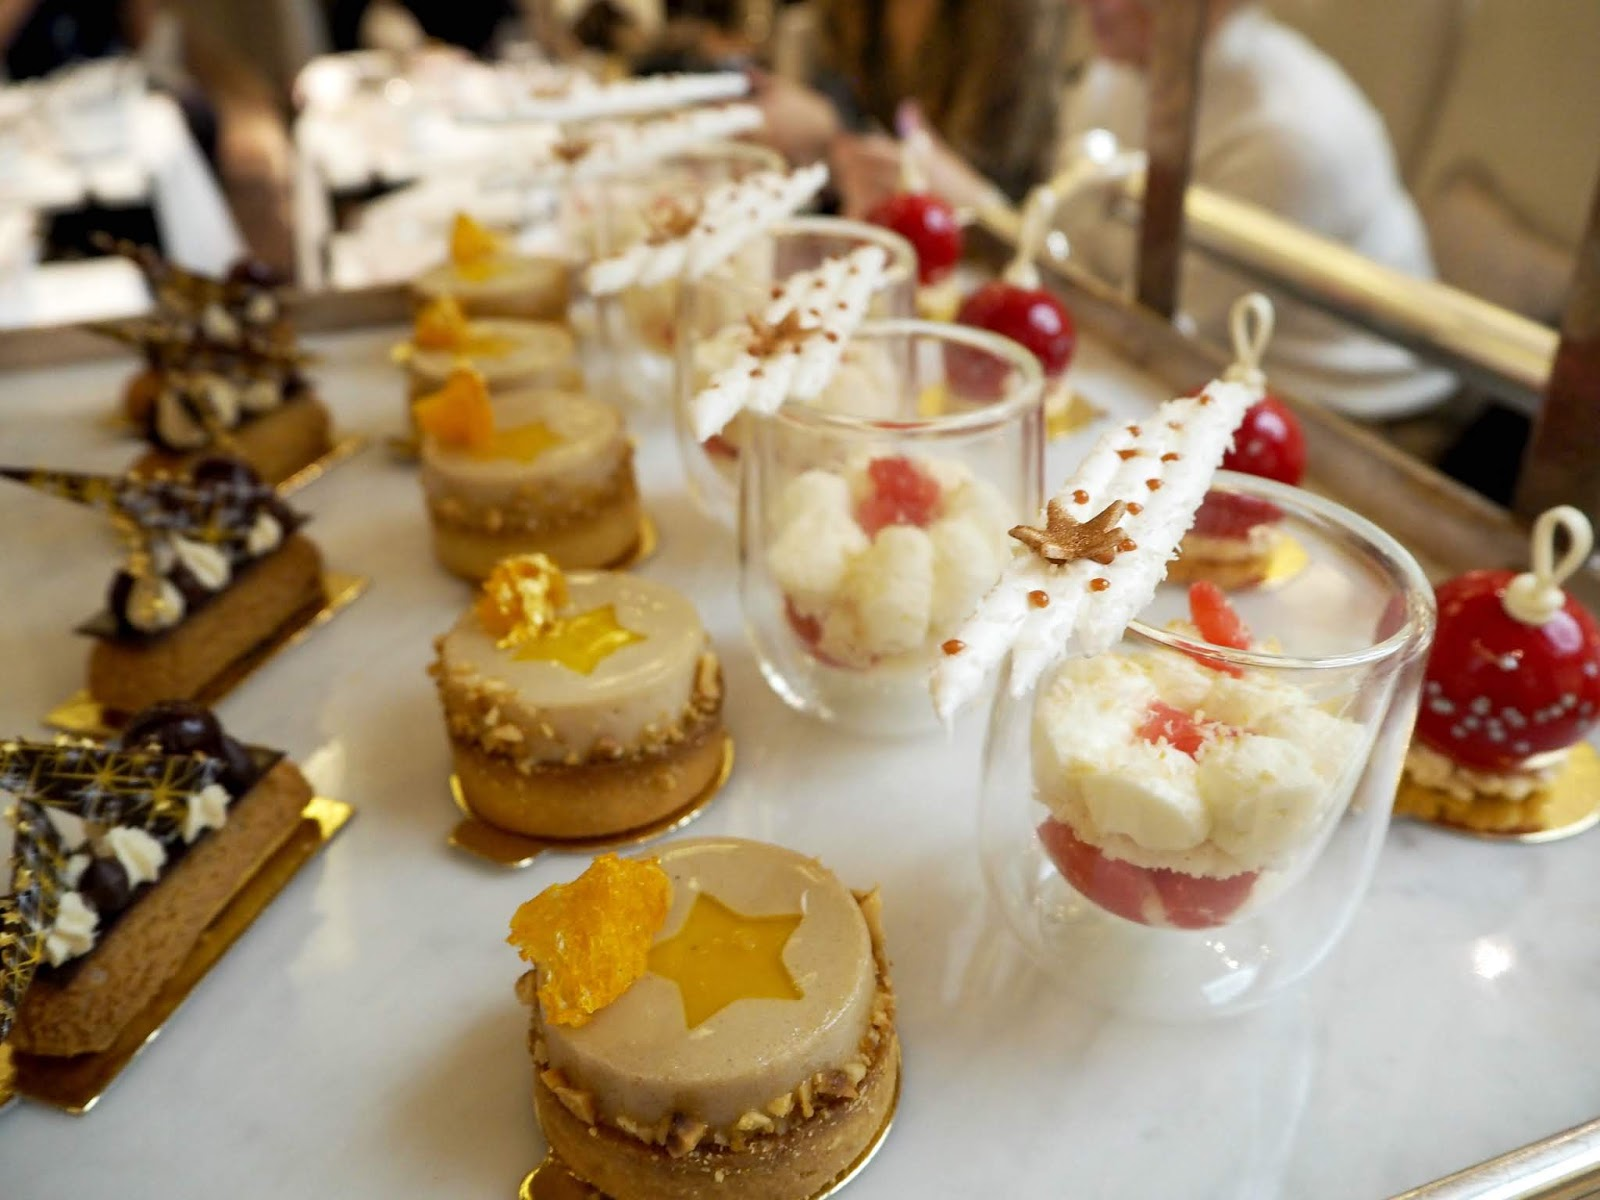 festive Patisserie served at The Corinthia London